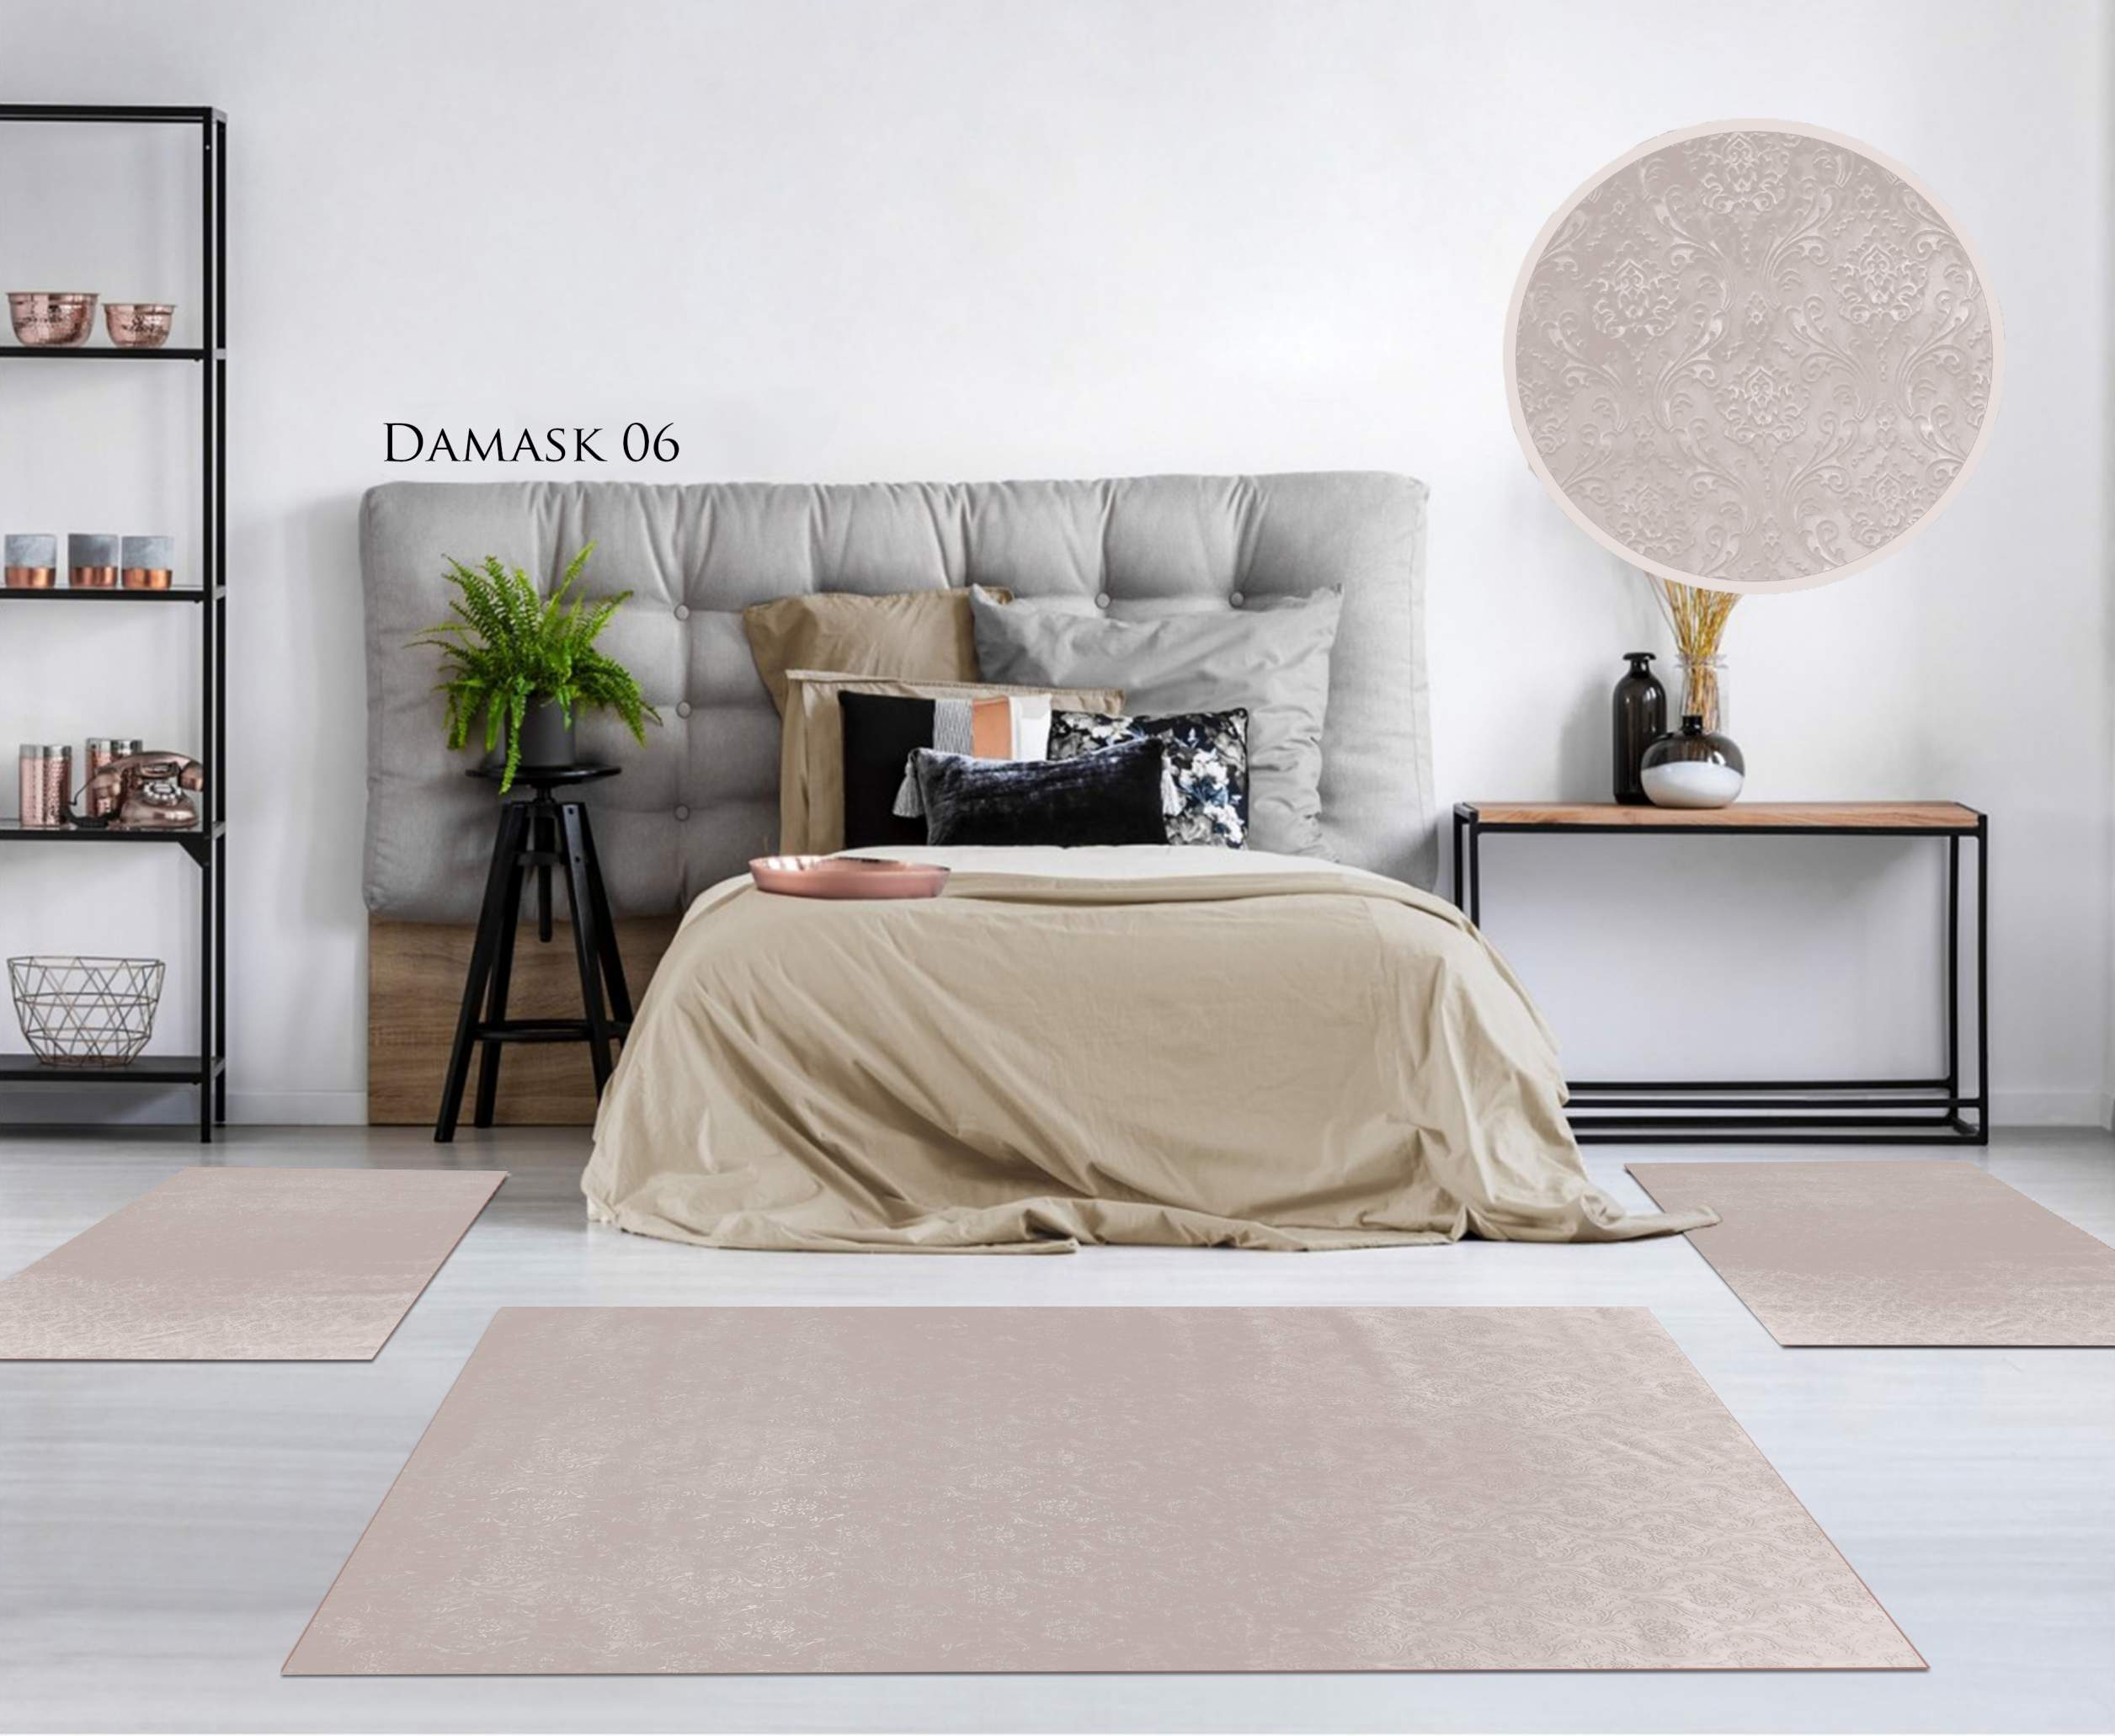 TAPIS CHAMBRE GAUFRE DAMASK CAPPUCINO